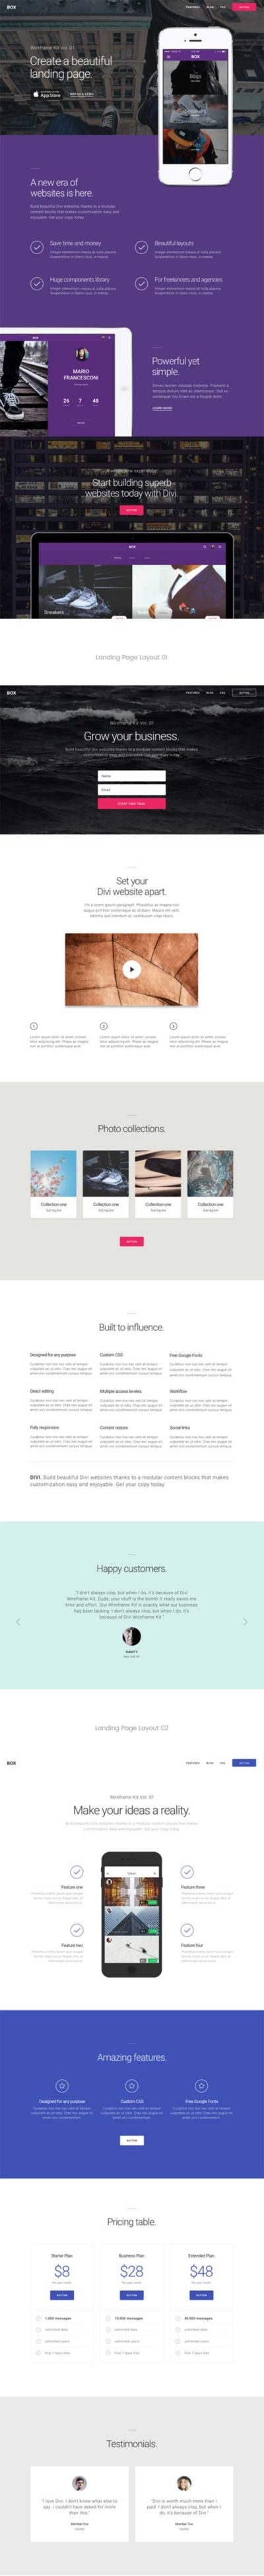 divi landing page layout pack